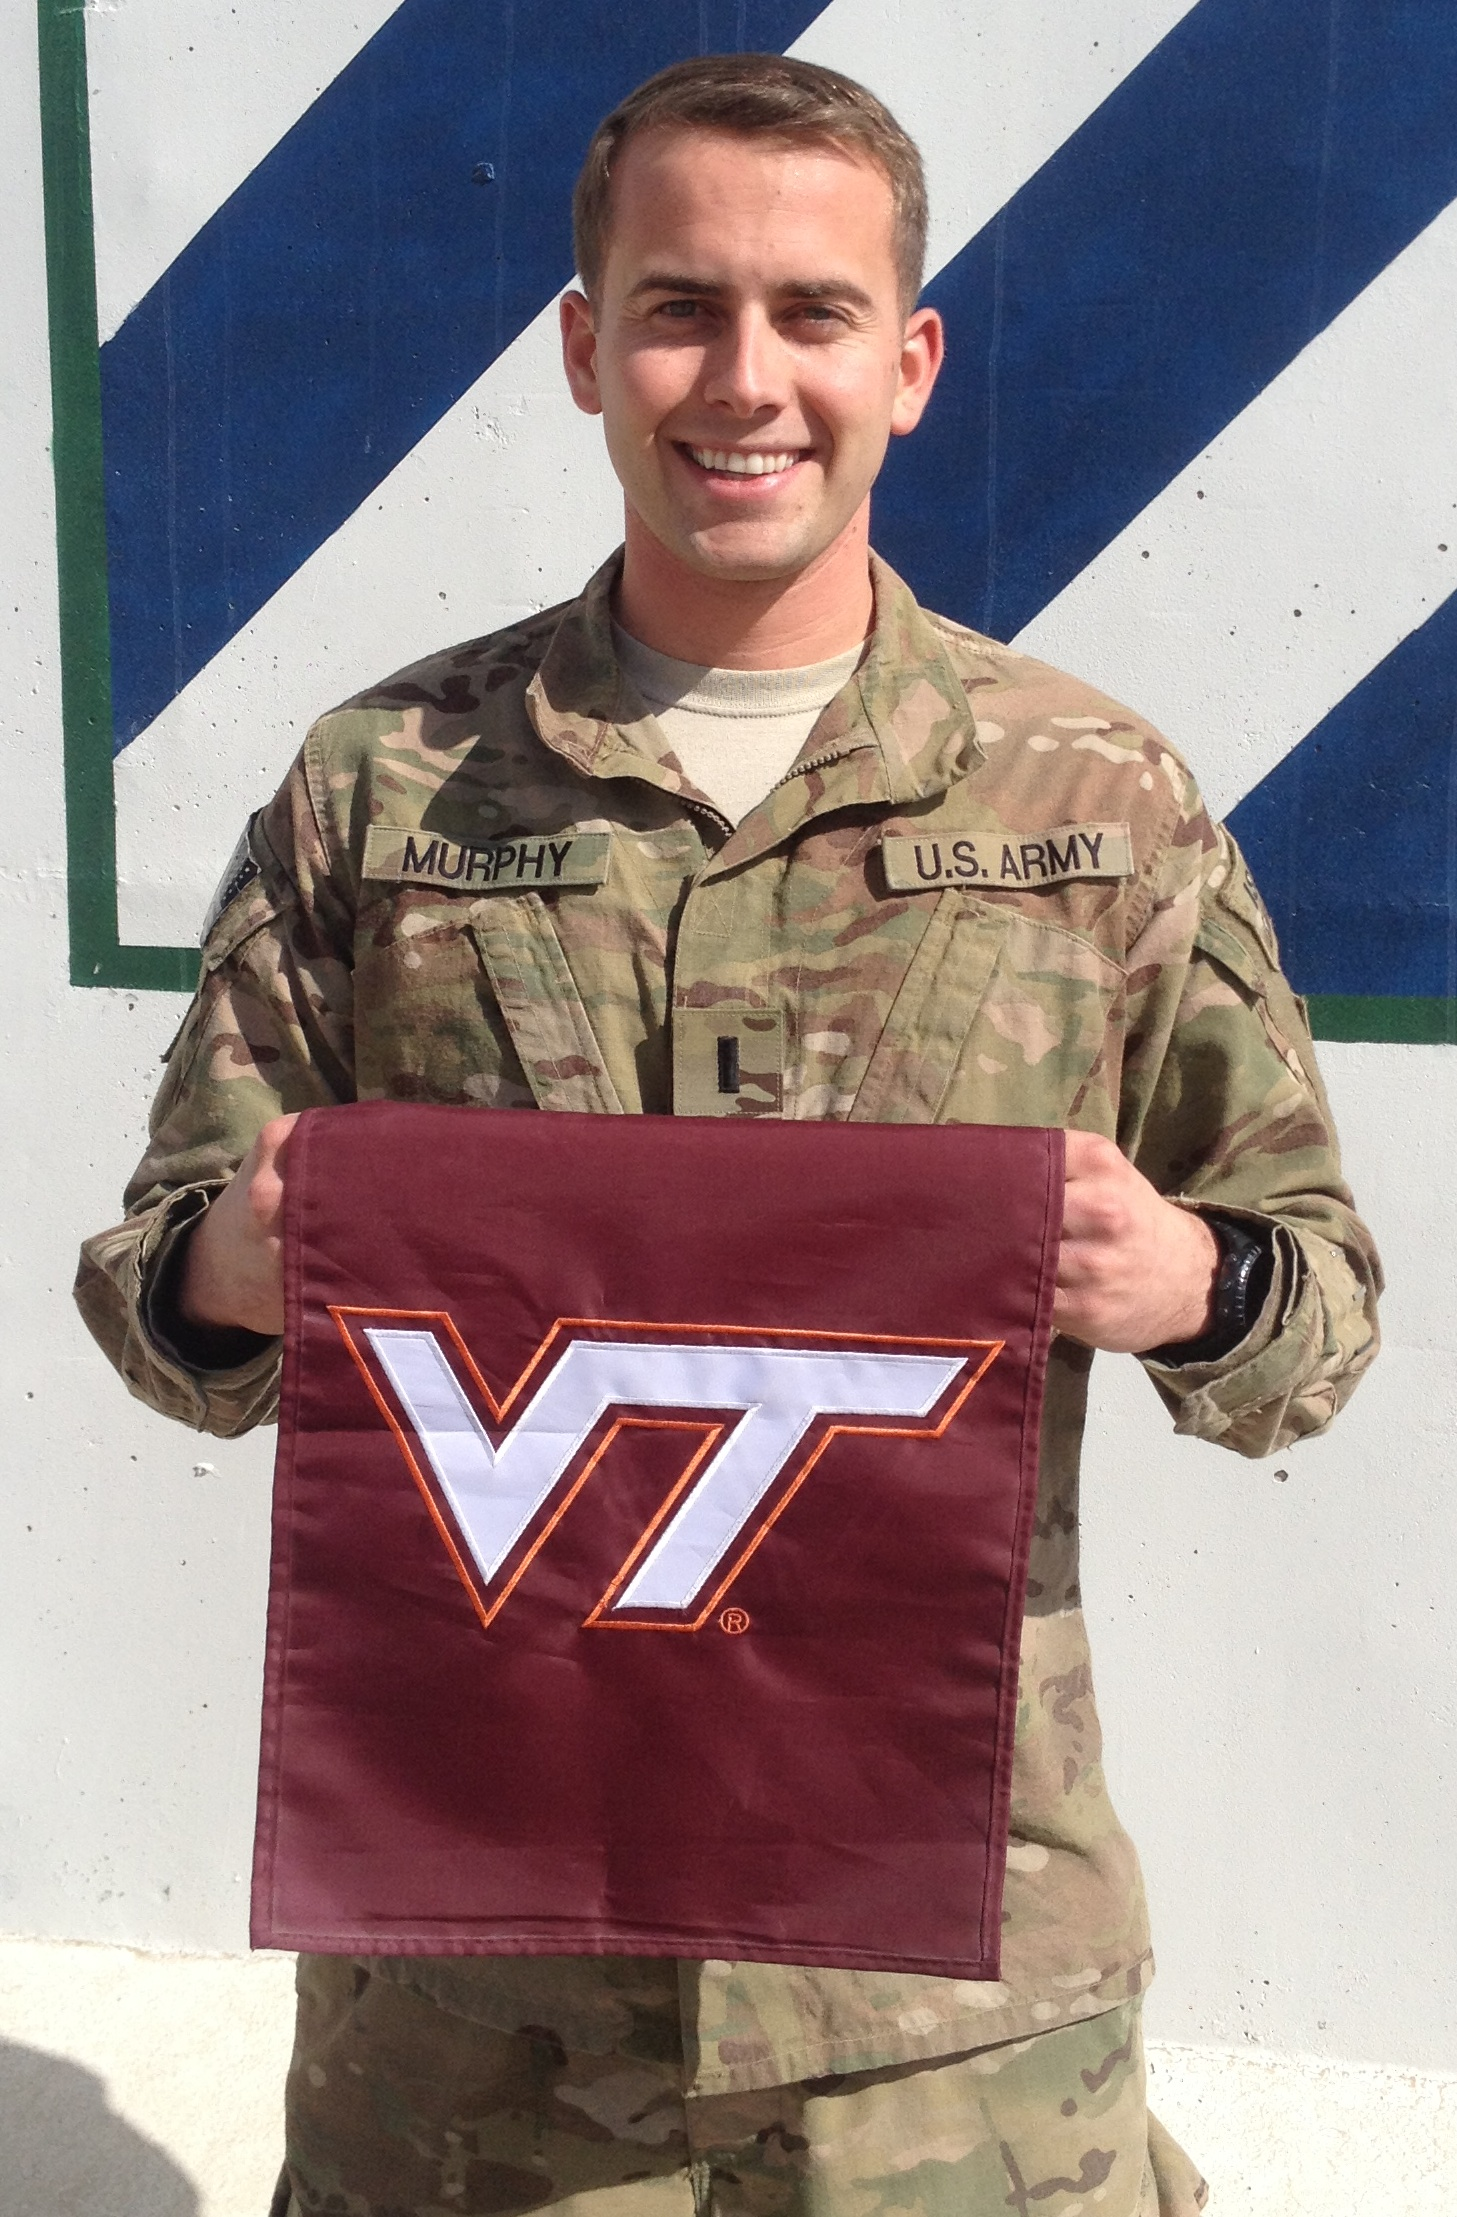 1st Lt. Ryan Murphy, U.S. Army, Virginia Tech Corps of Cadets Class of 2010 from his deployed location in Afghanistan.